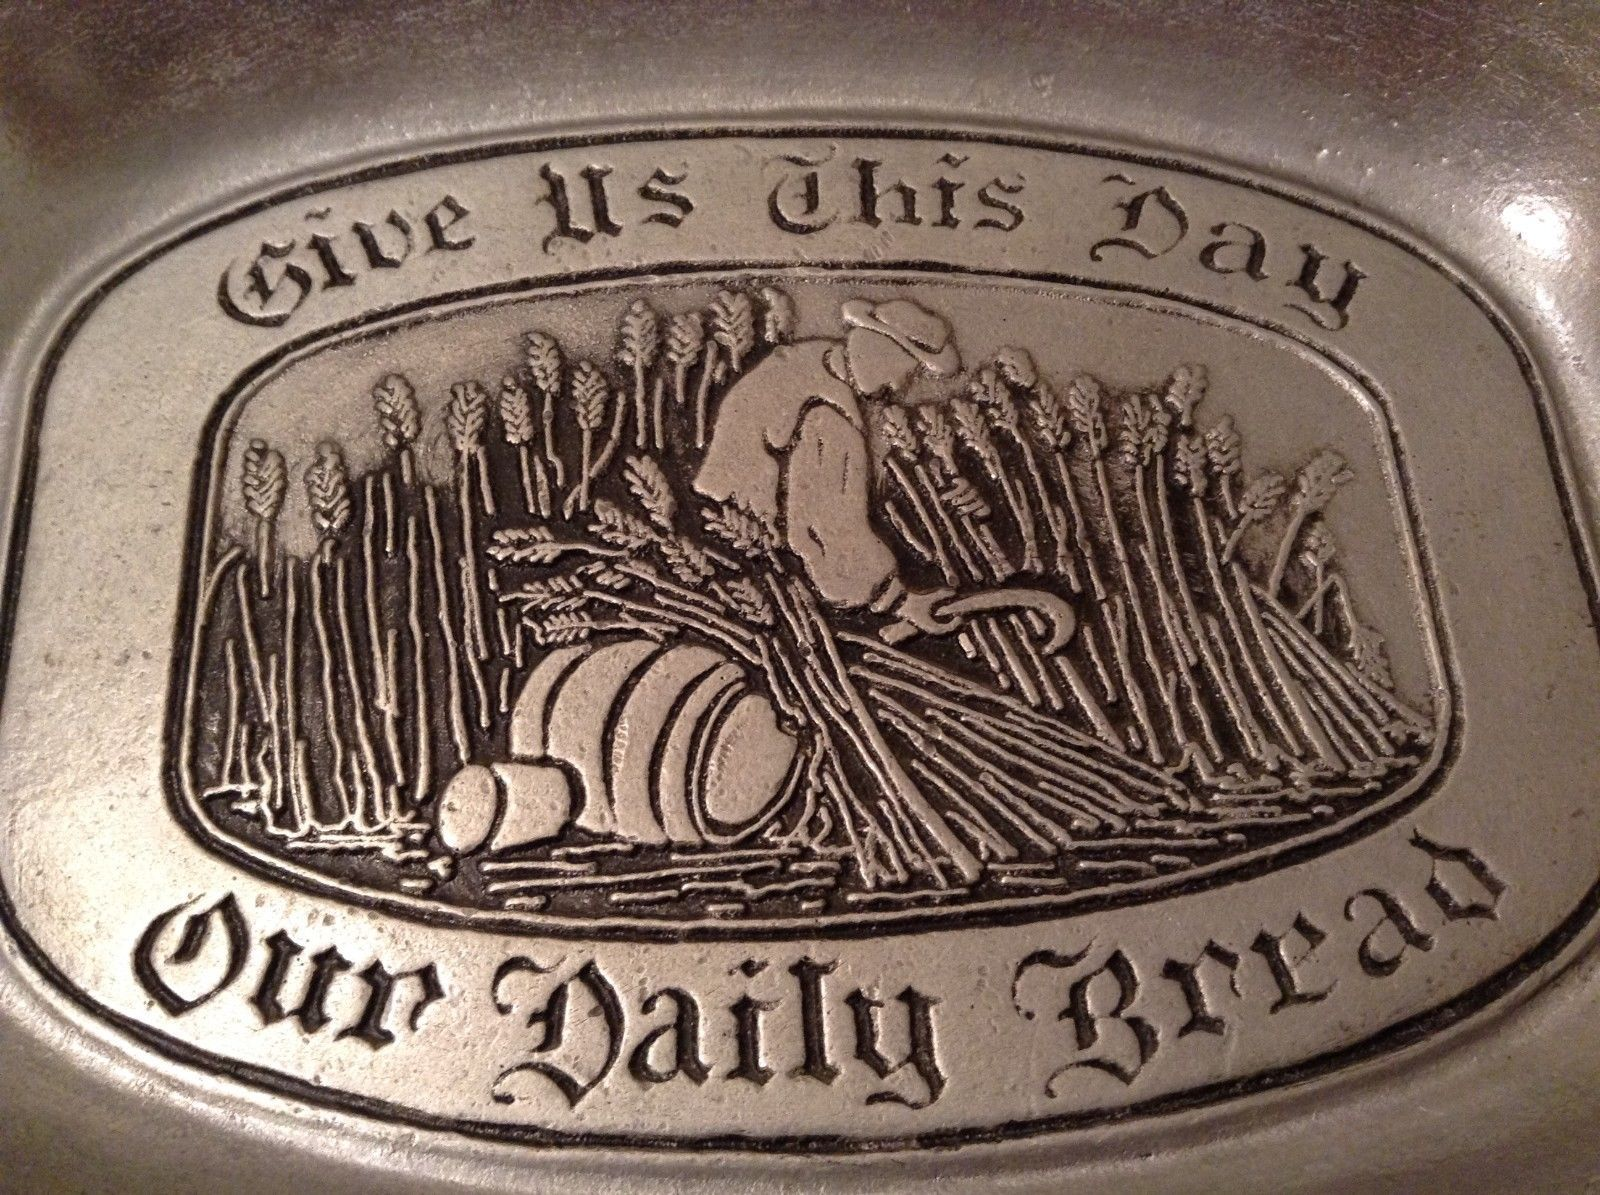 New England w Maker's Mark Pewter Dish Give us this Day our Daily Bread